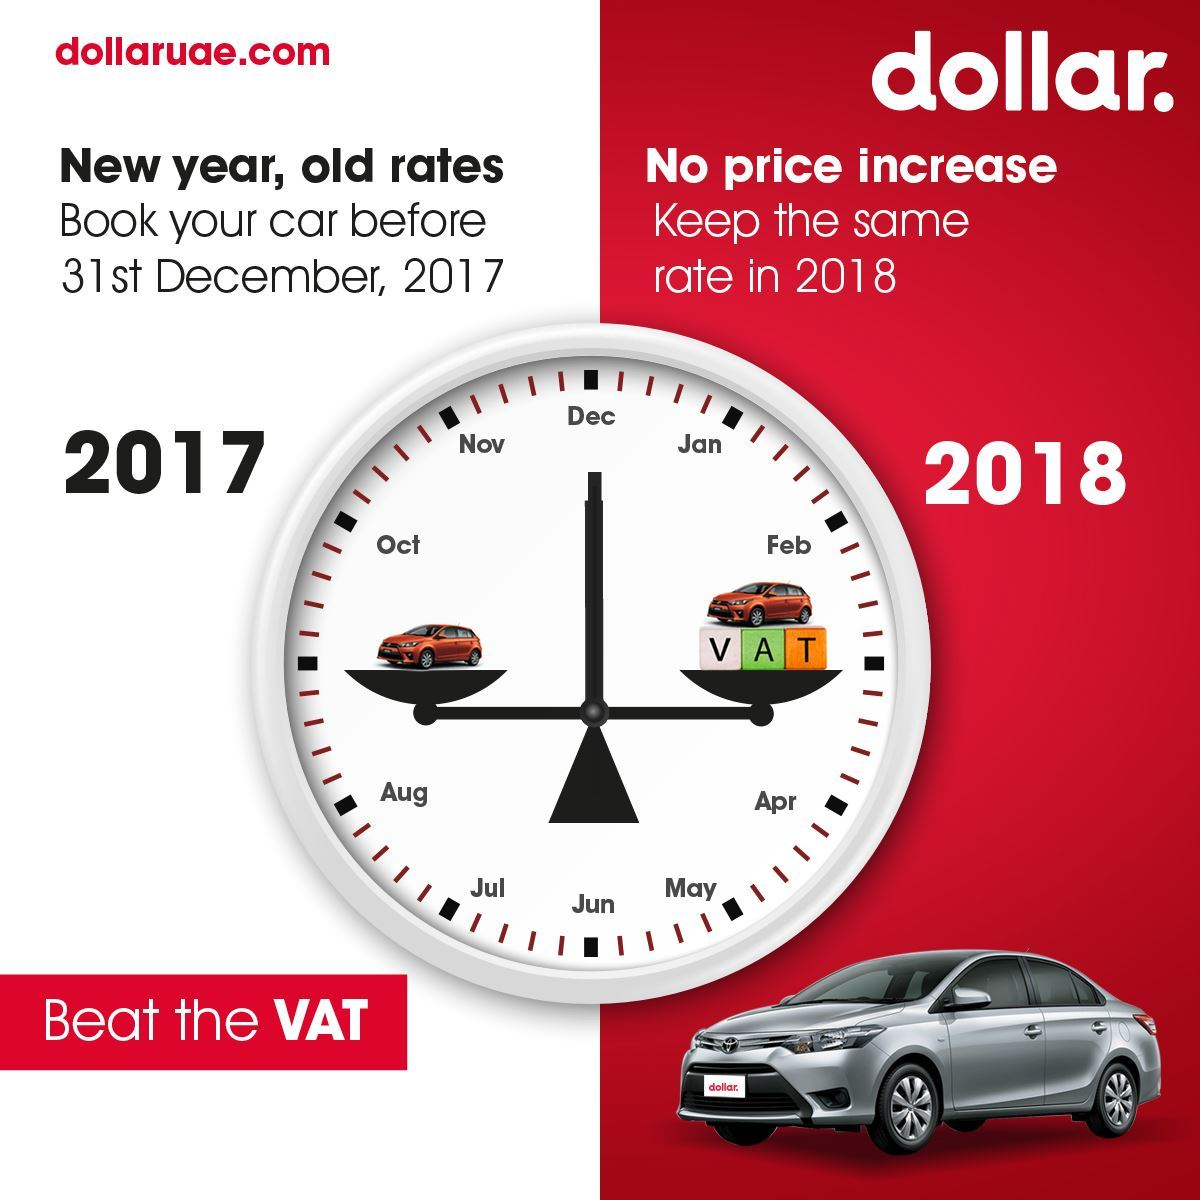 Ring in the new year with exciting car rental savings from Dollar